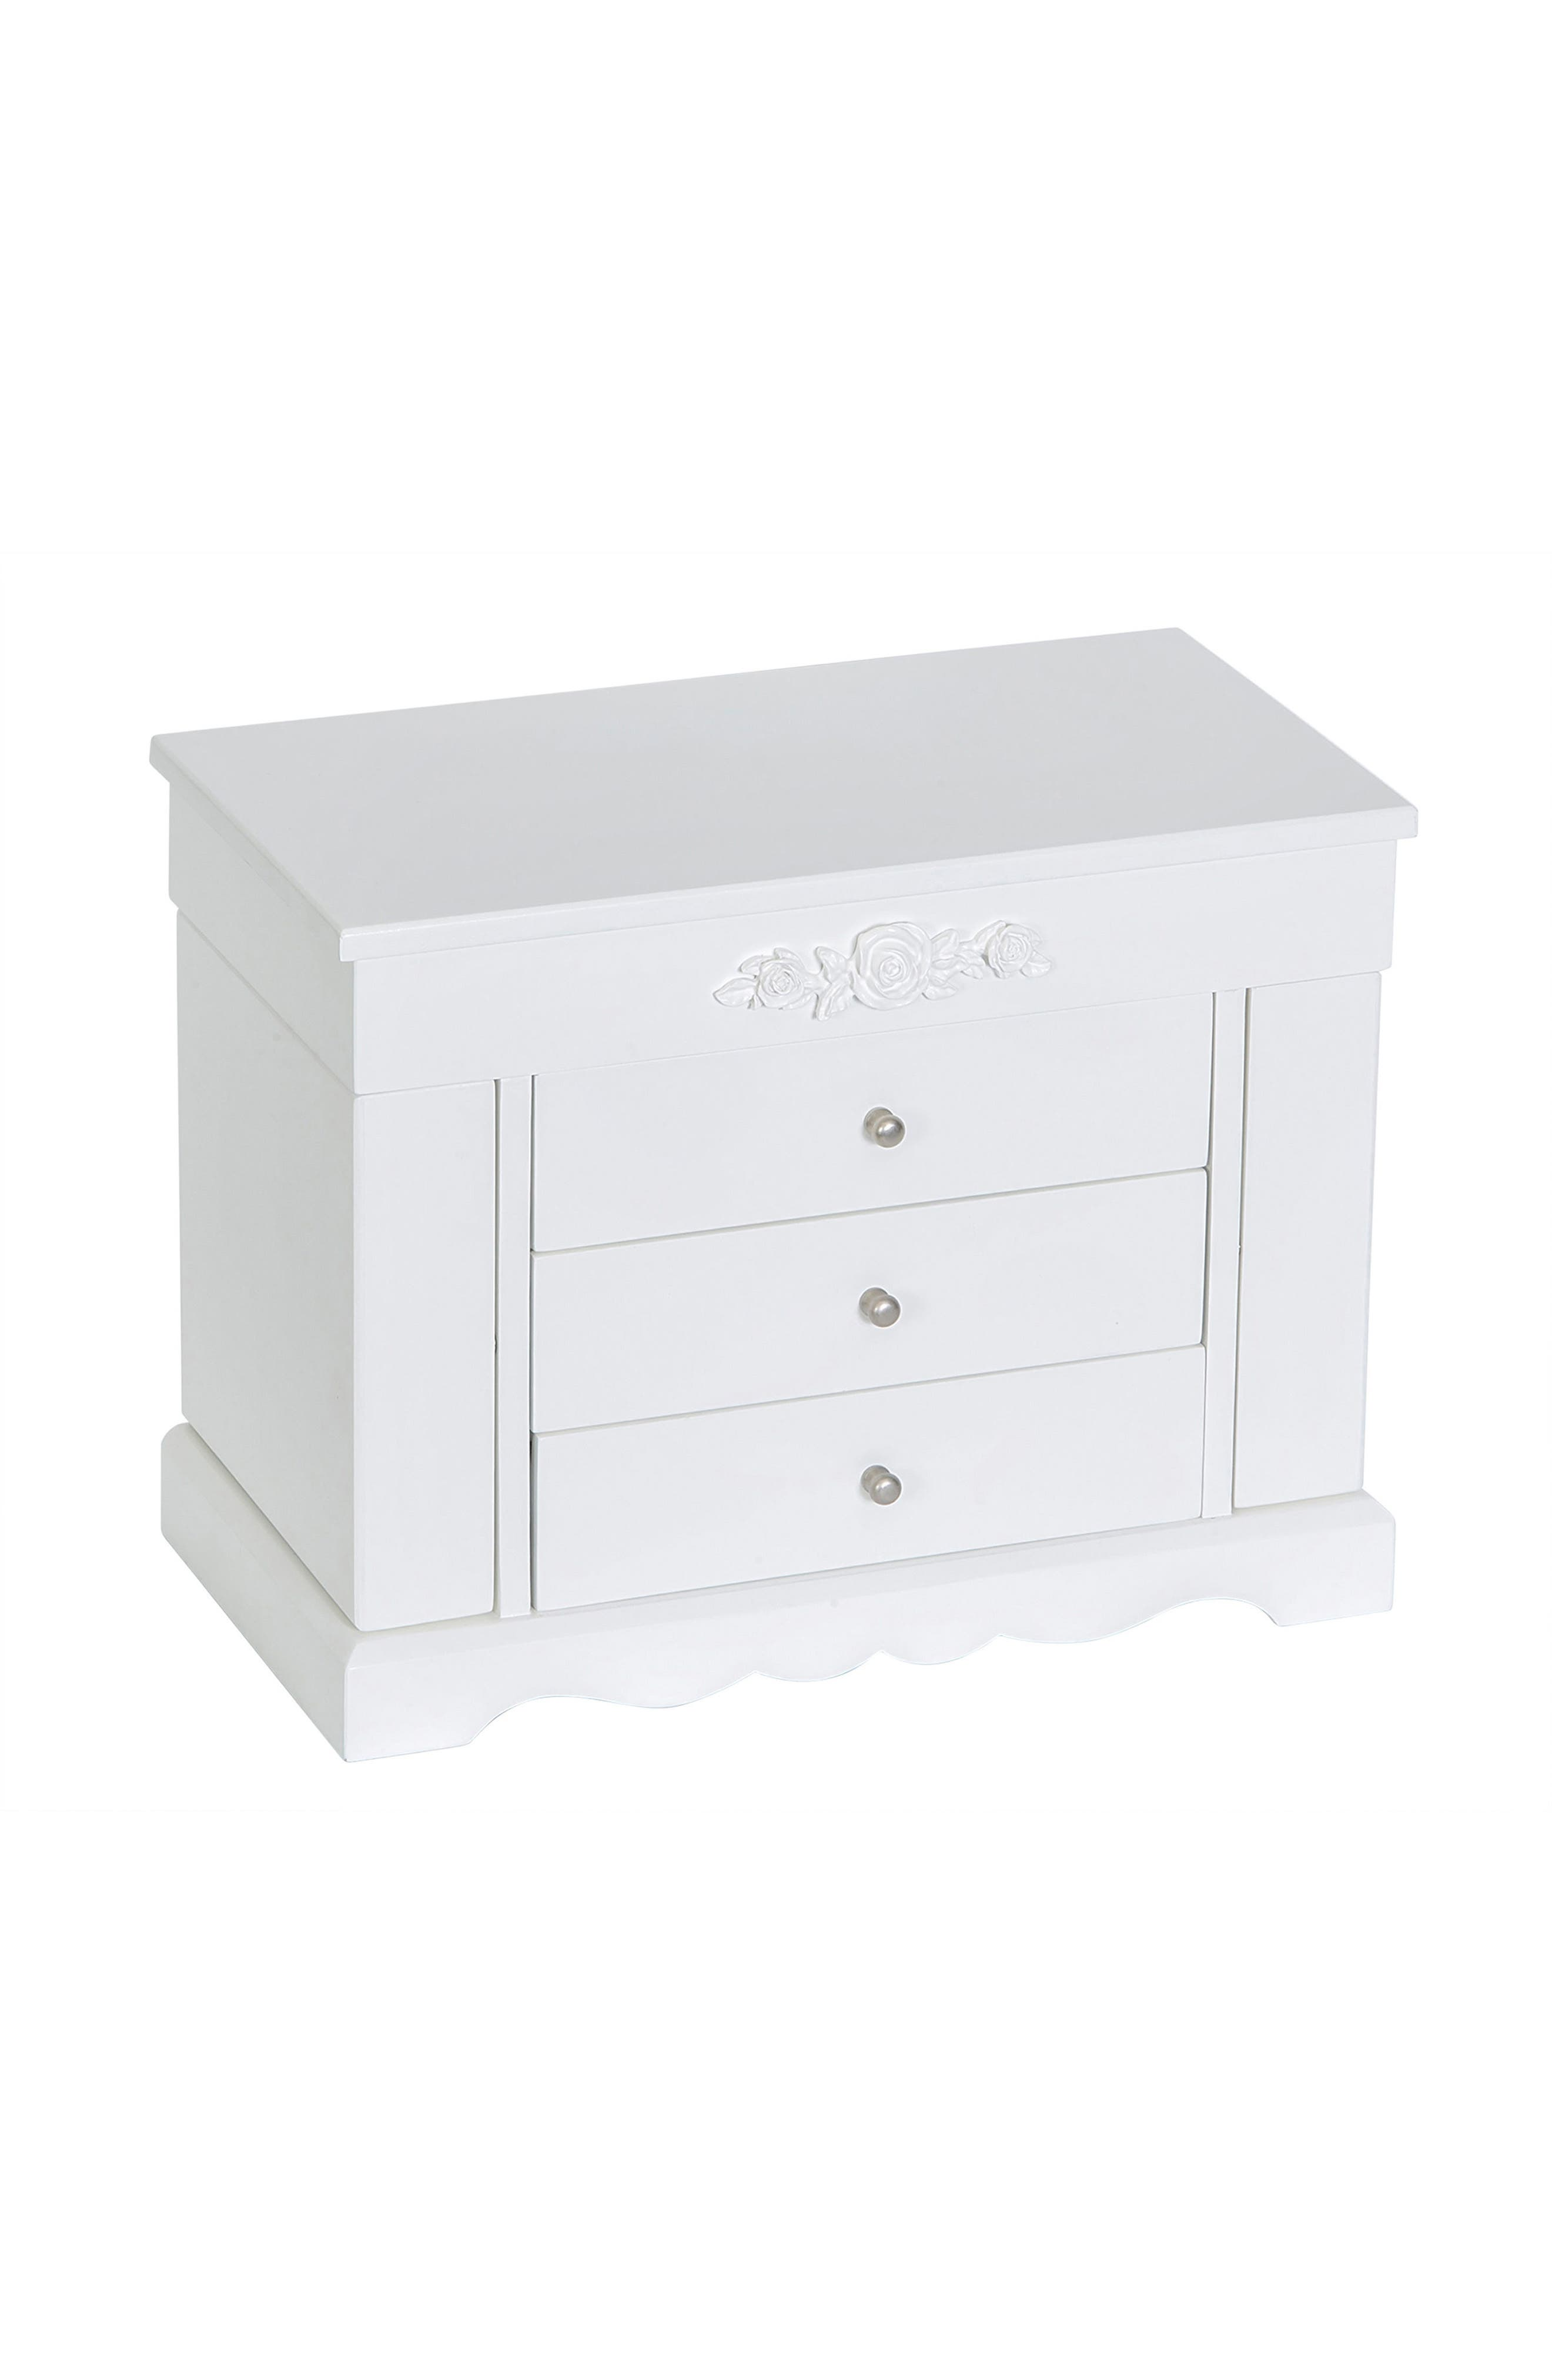 Montague Jewelry Box,                         Main,                         color, White